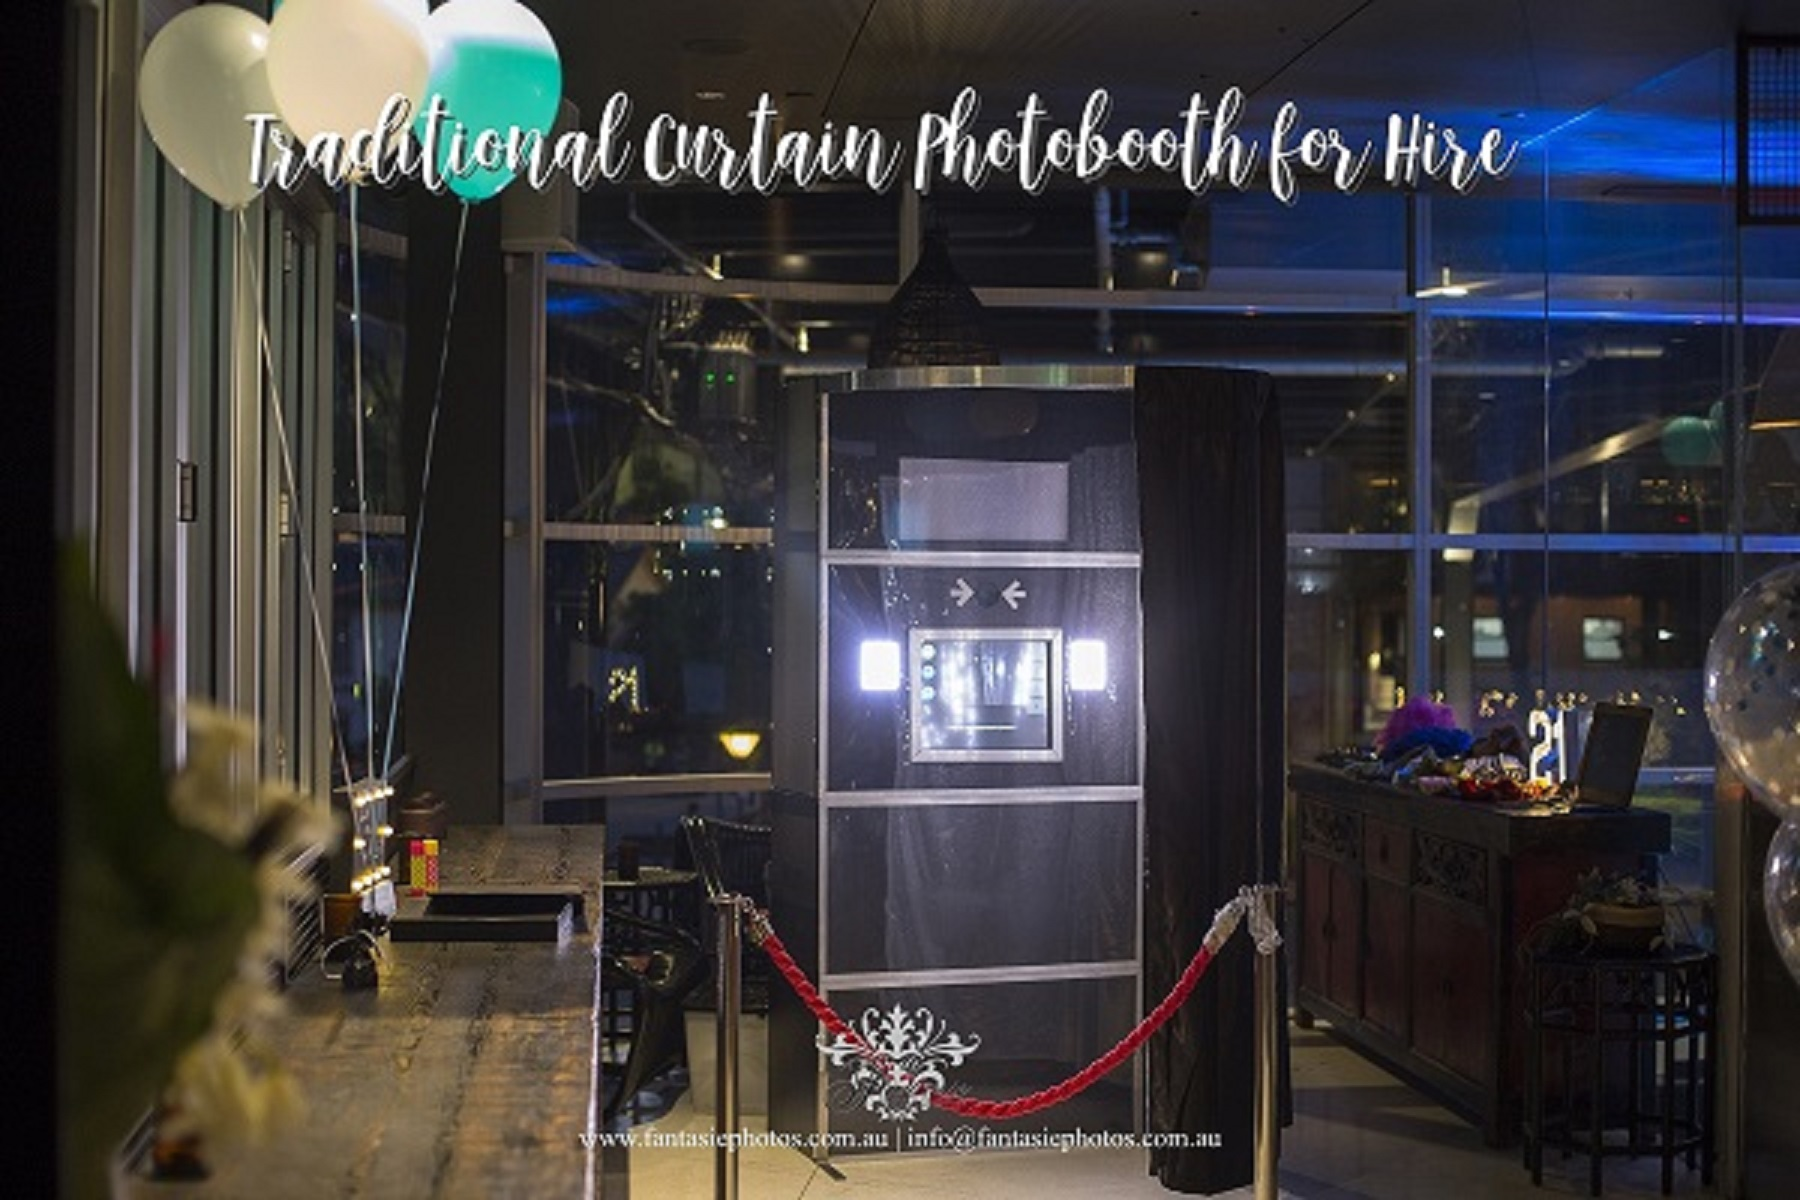 Traditional Style Photobooth for Hire in Sydney Australia